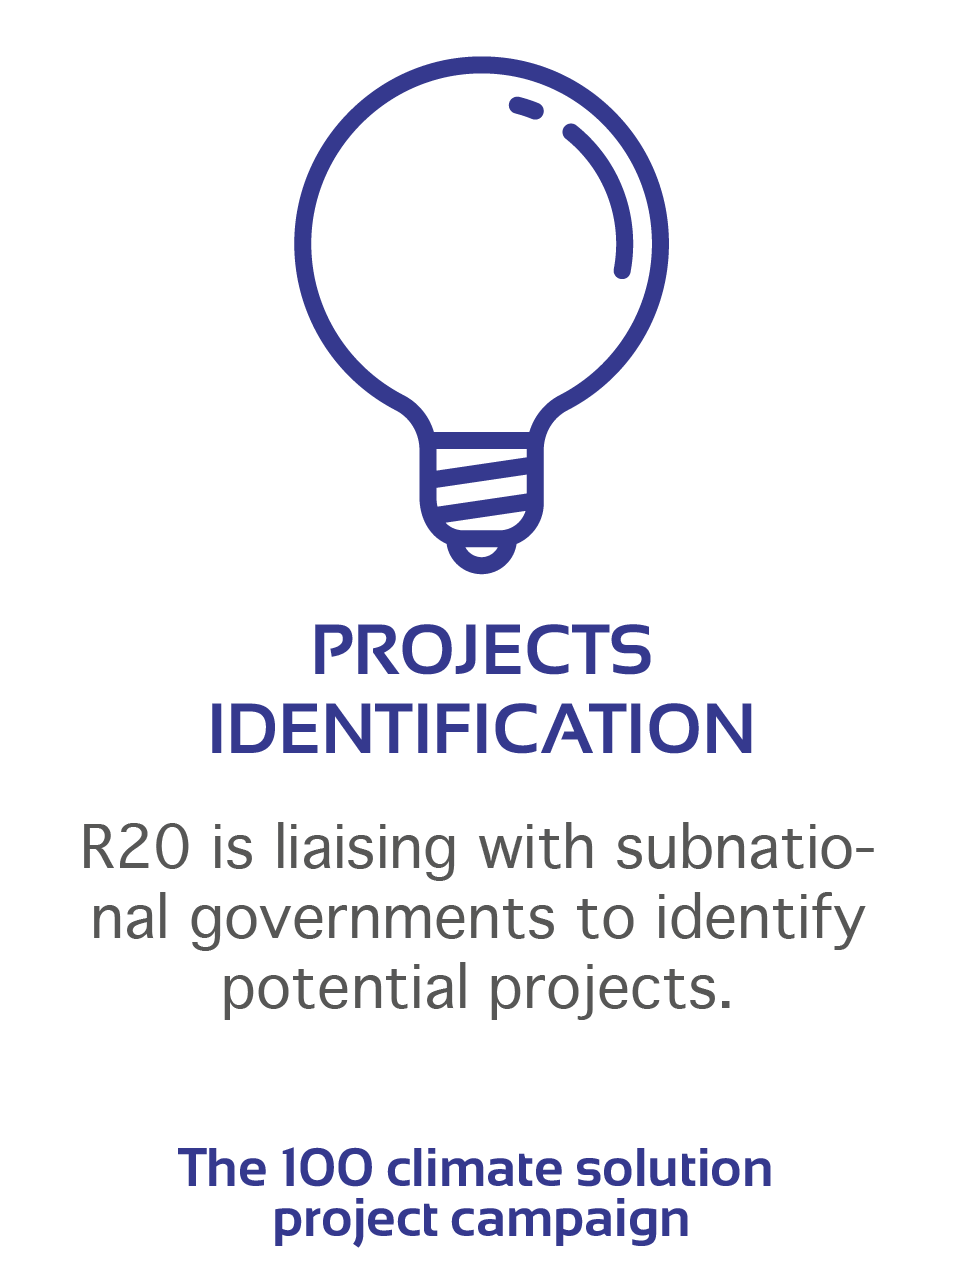 r20-picto-projects-identification-01